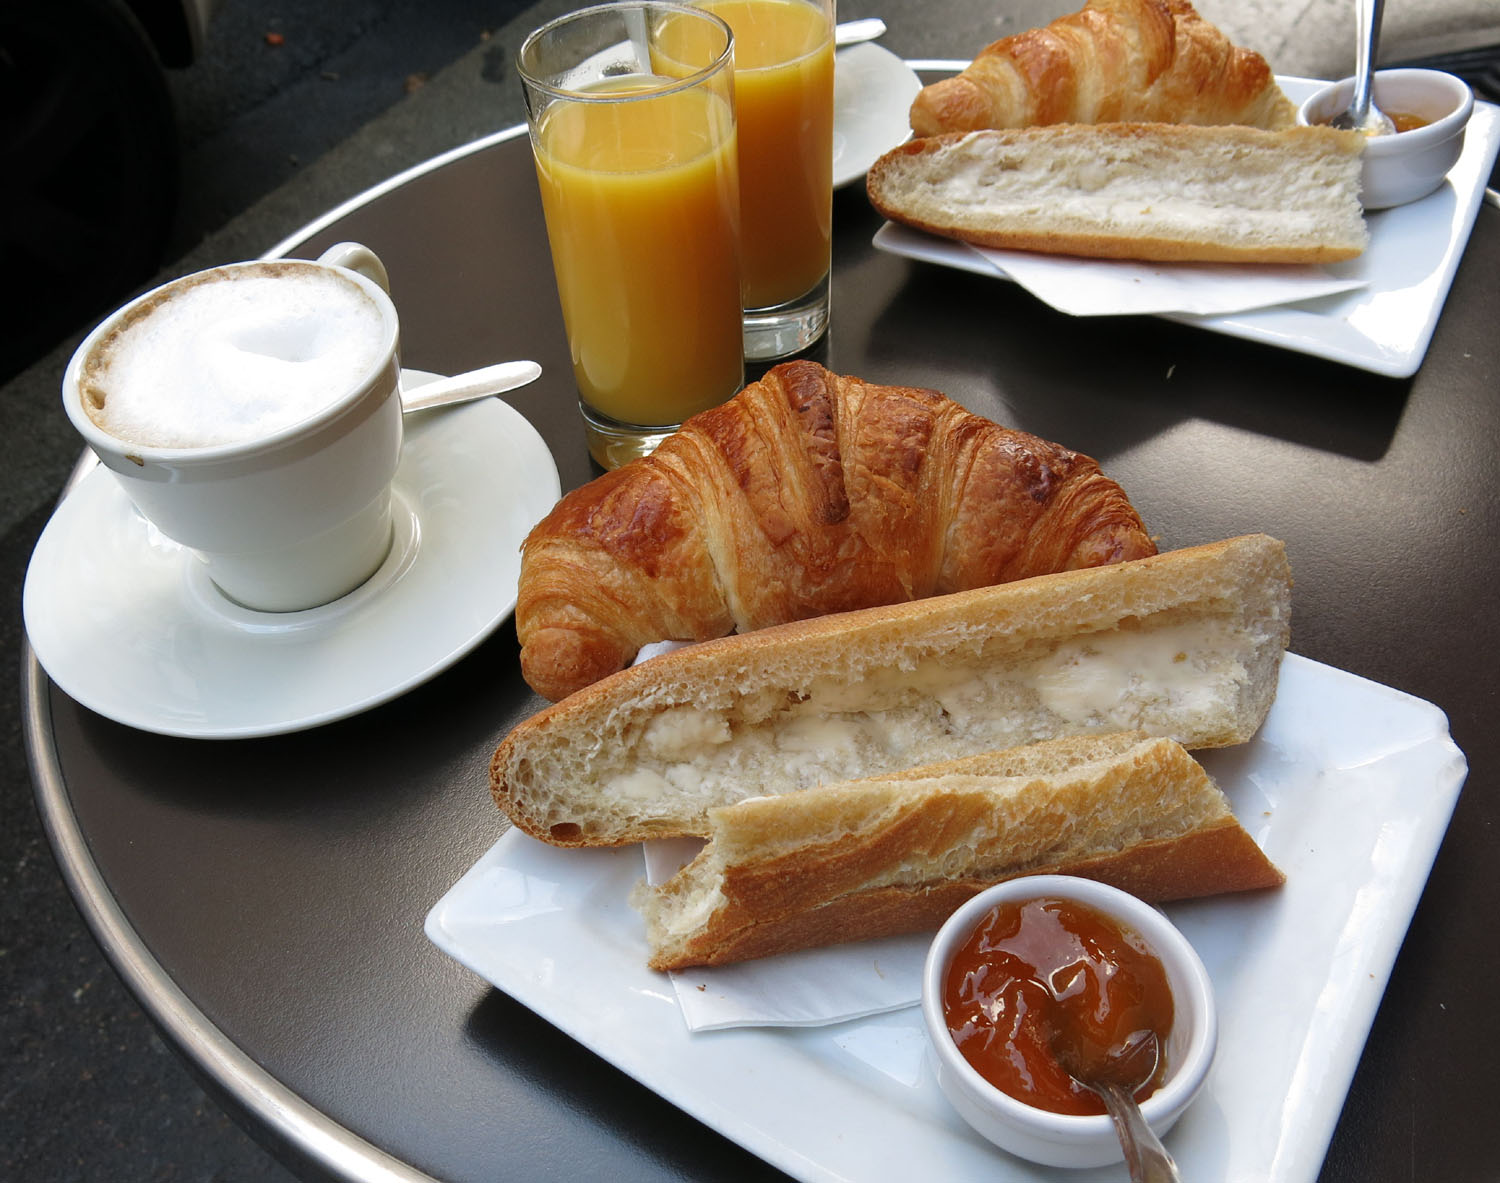 France-Paris-Food-And-Drink-Breakfast